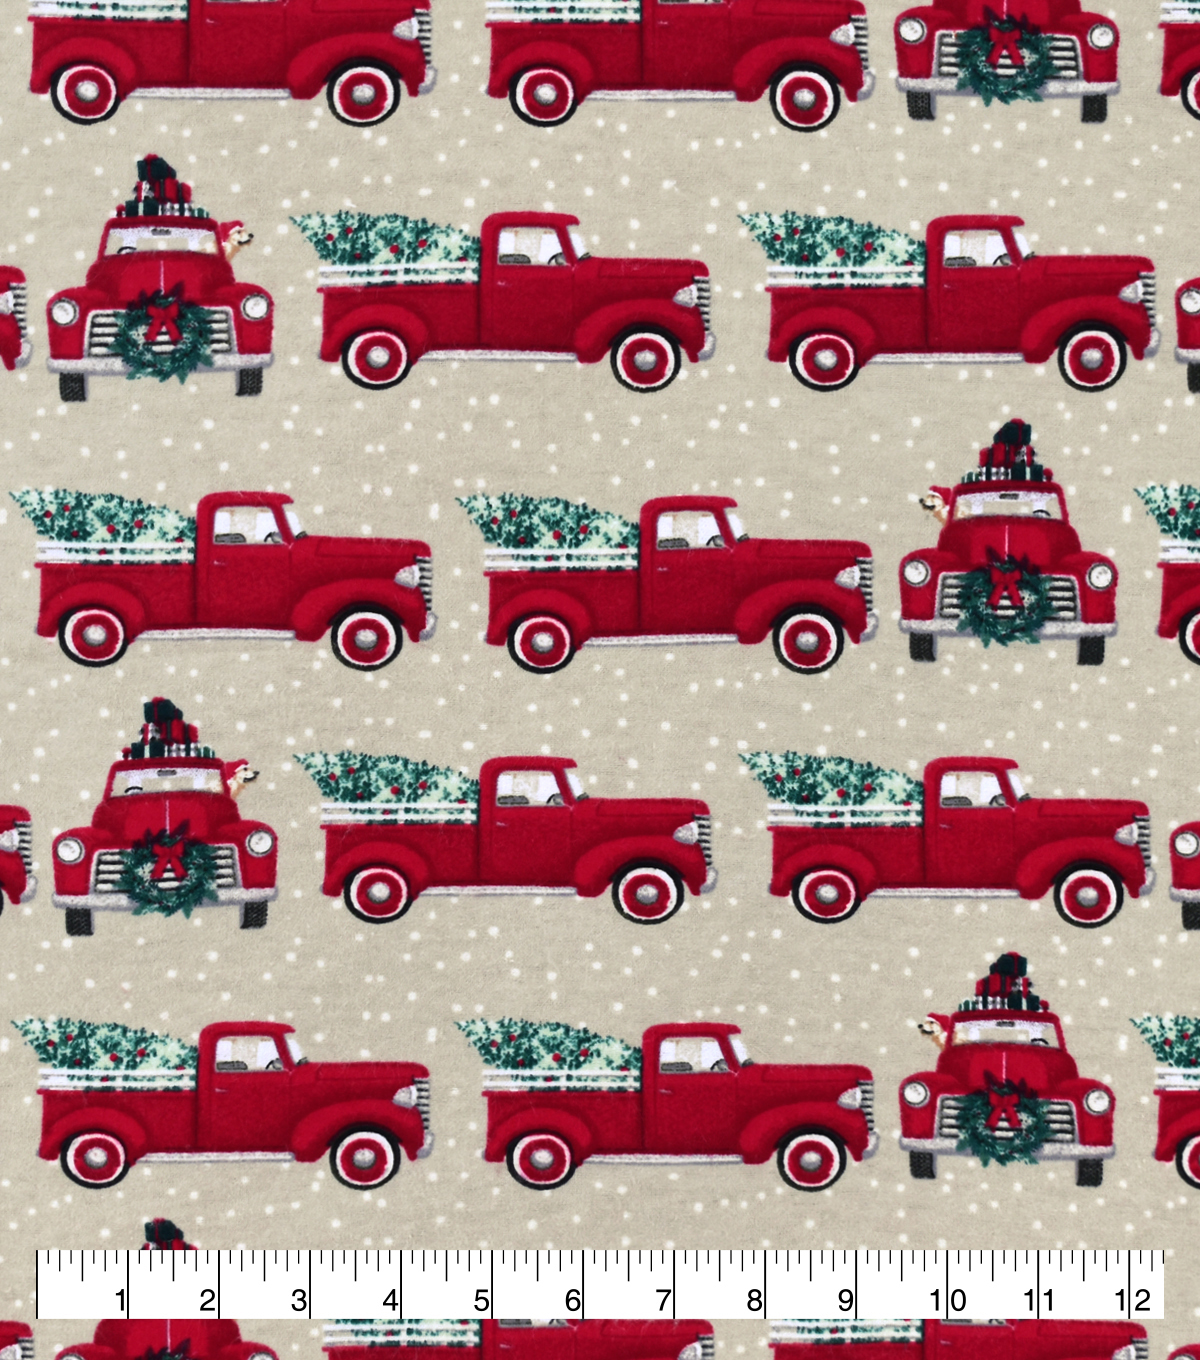 307 3077893 red truck christmas tree